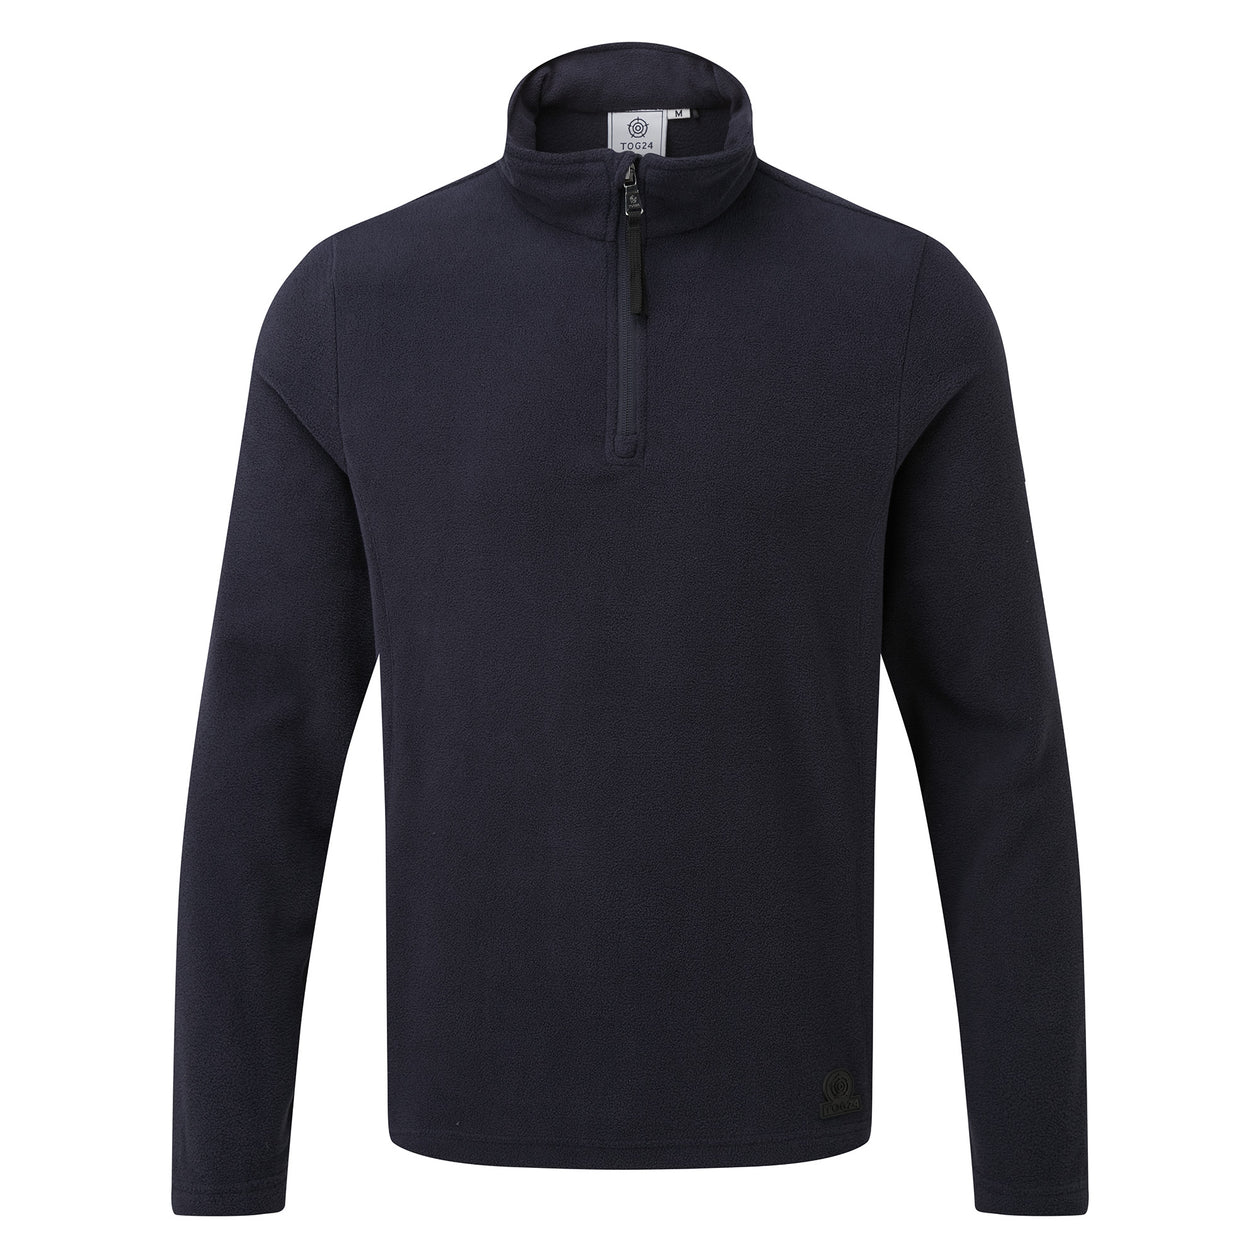 Treeton Mens Fleece Zipneck - Navy image 4